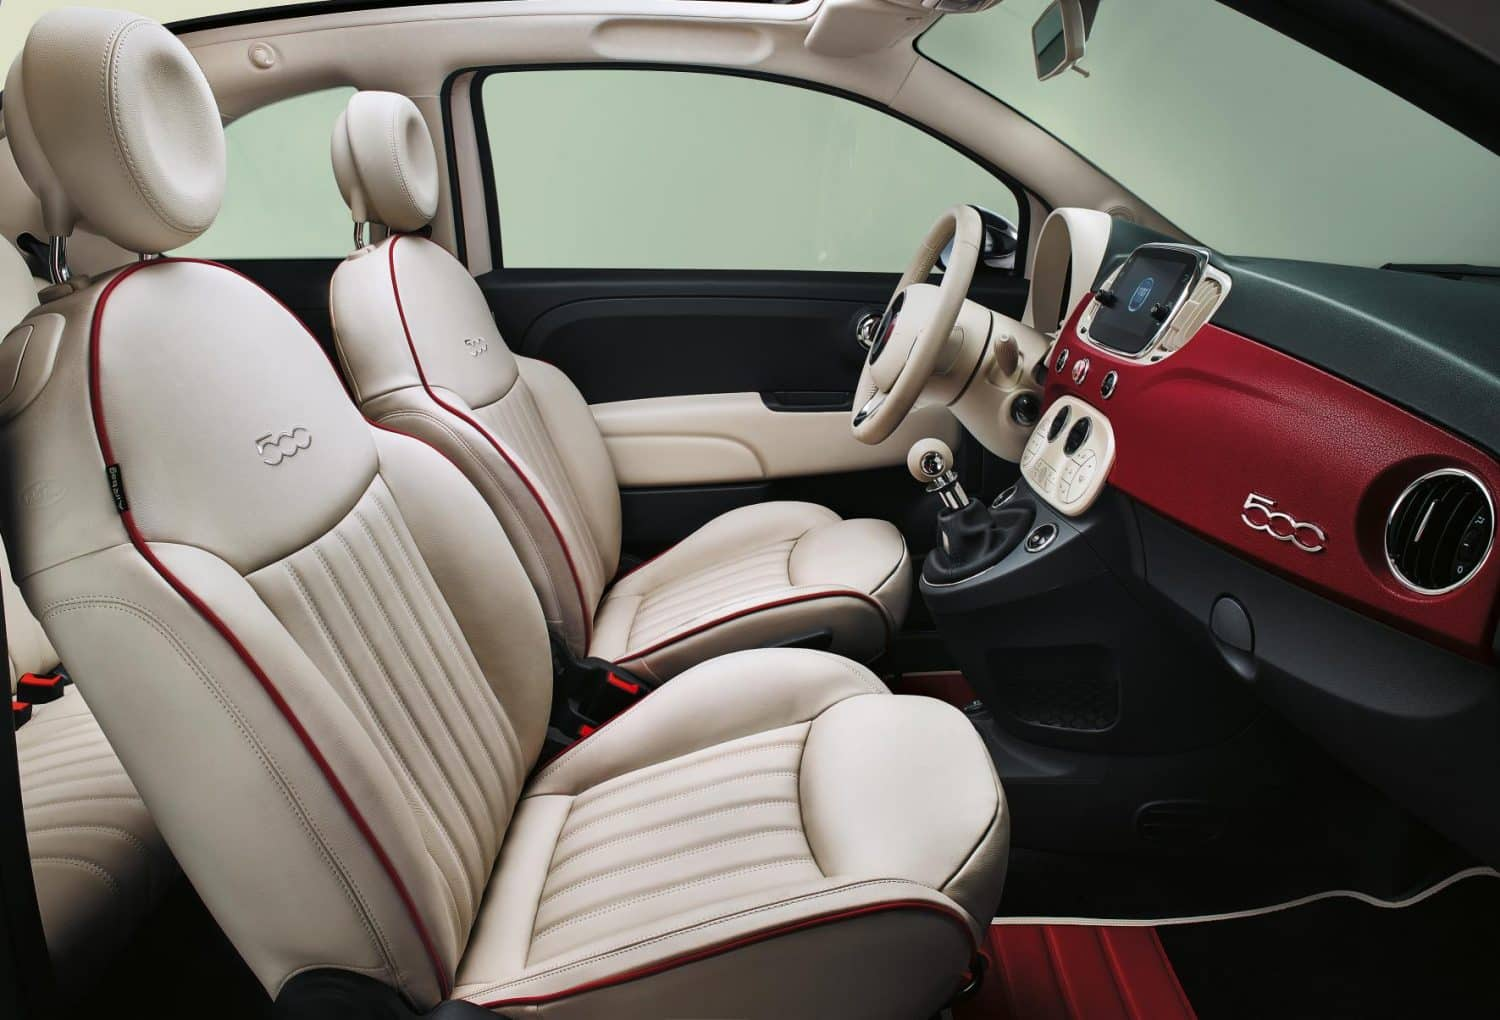 Interior of the special edition 500 released by Fiat to celebrate the model's 60th anniversary